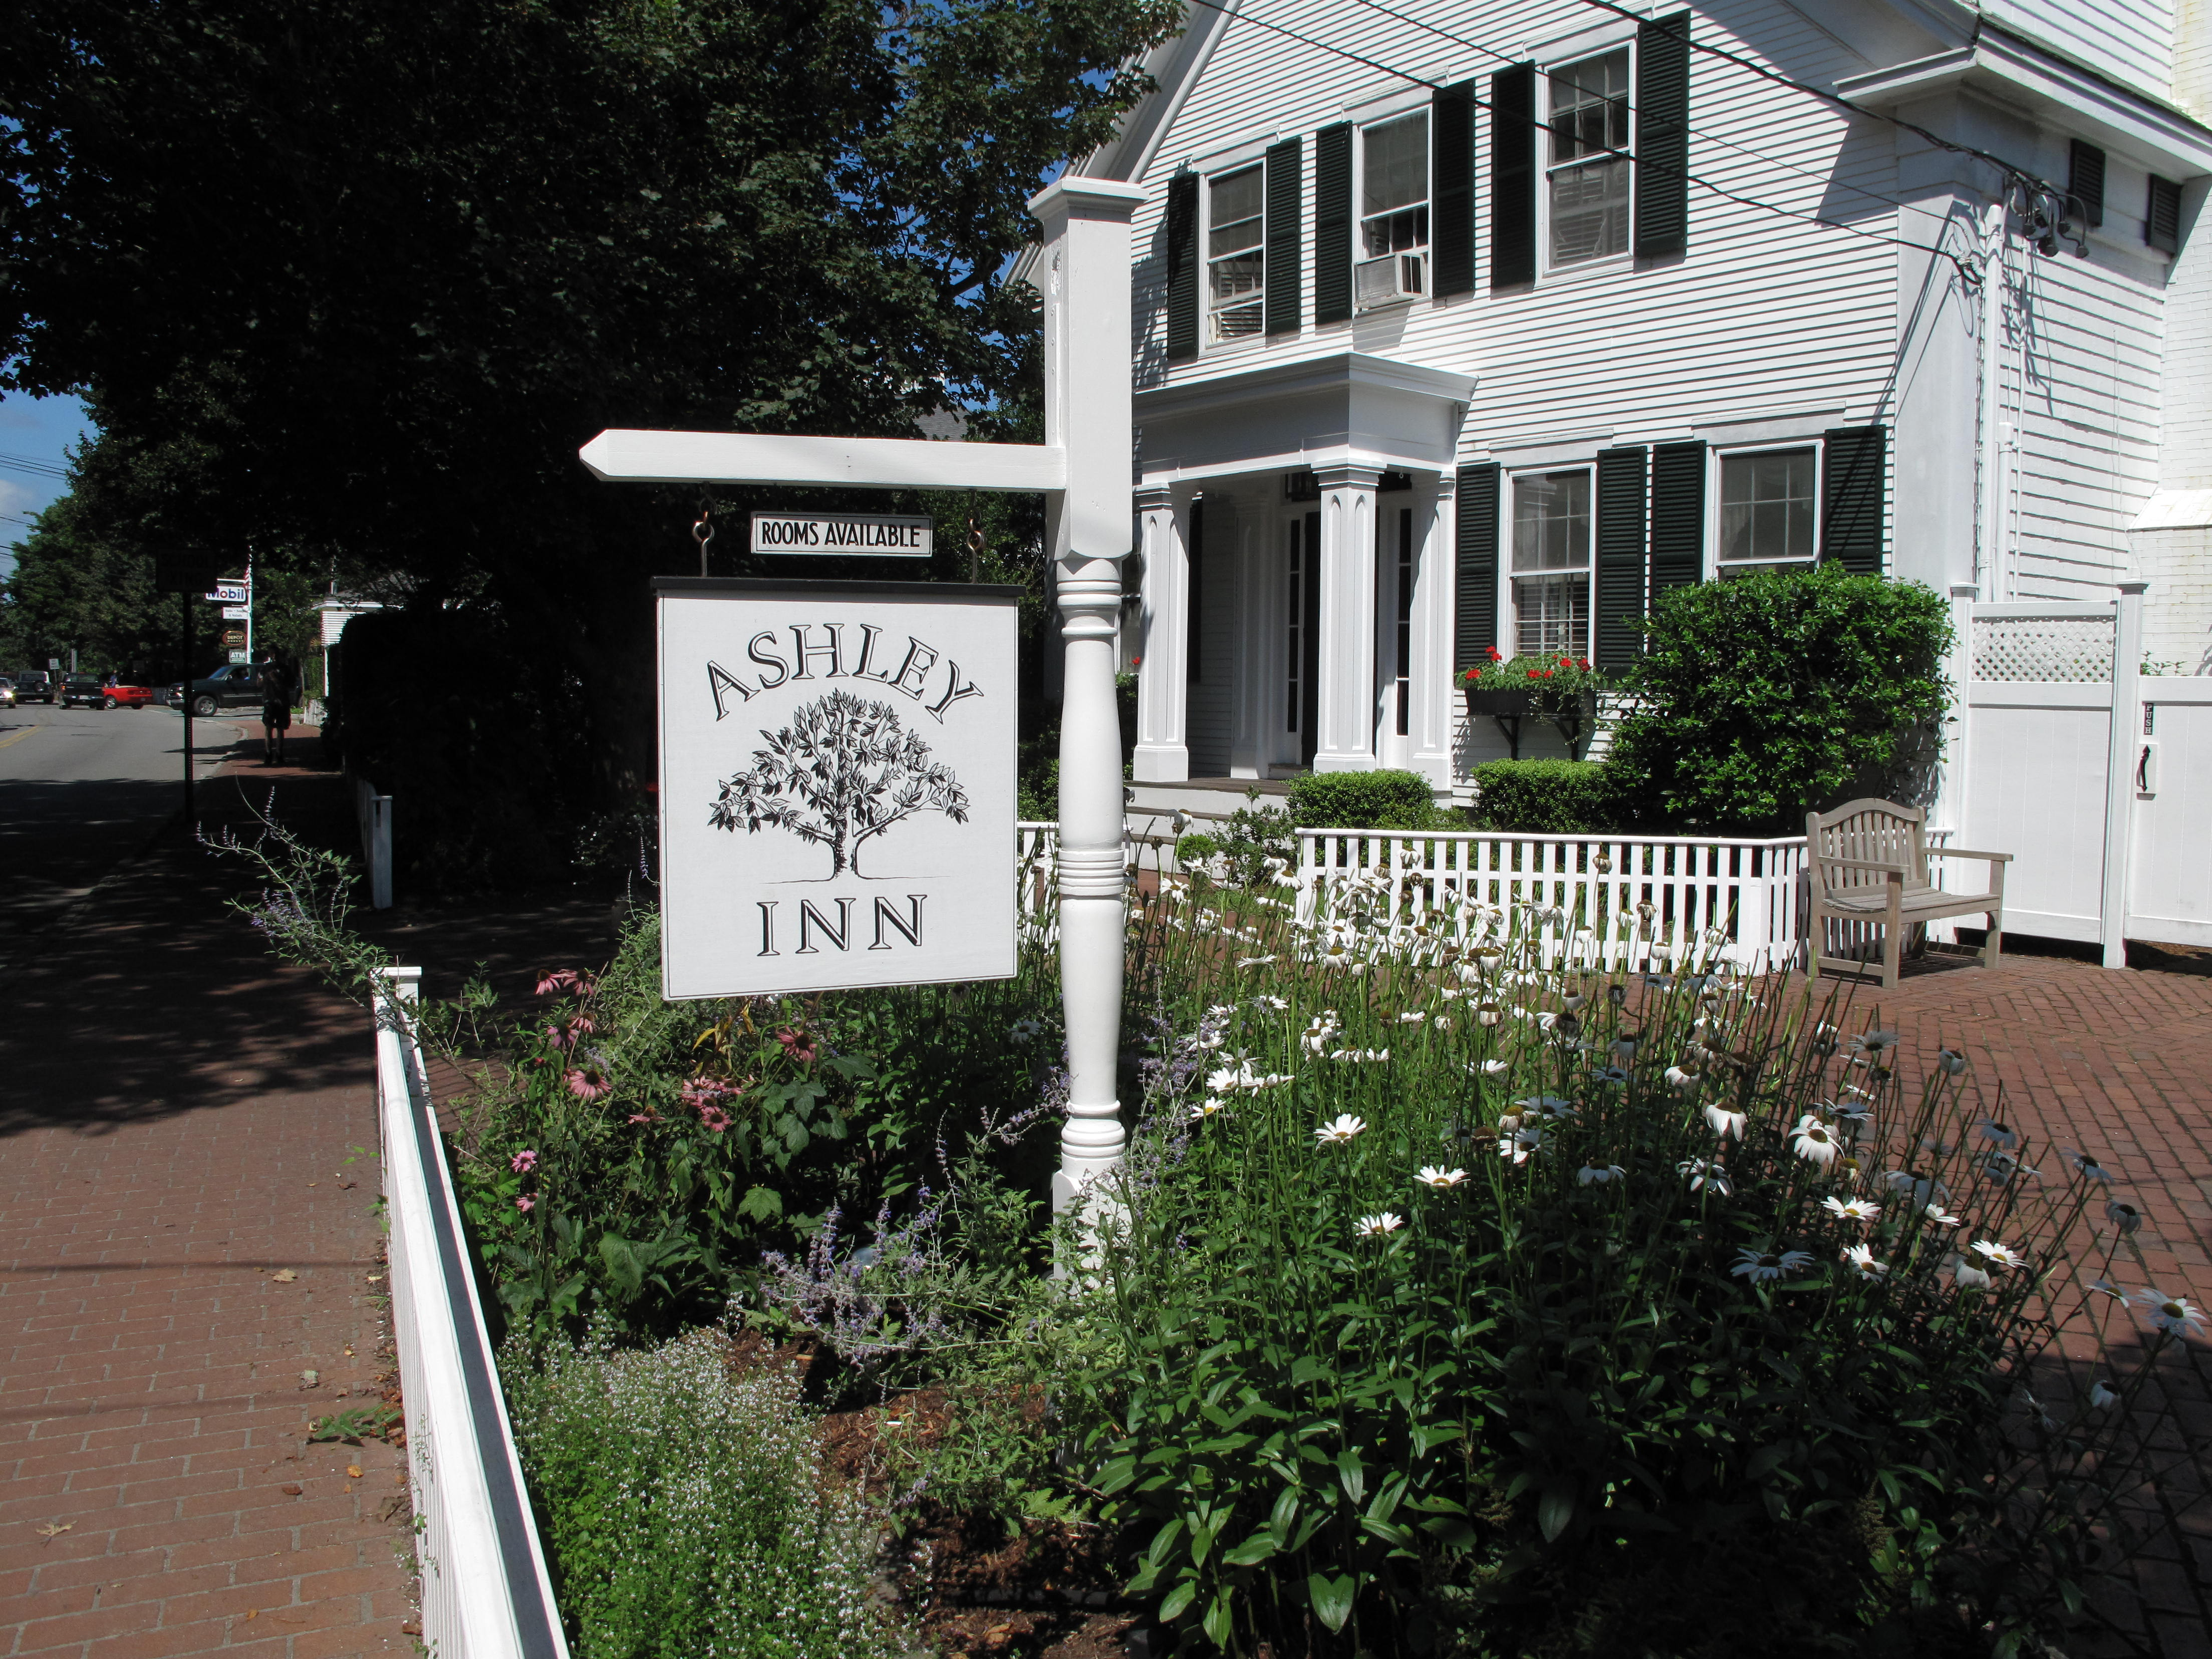 Ashley Inn Bed and Breakfast